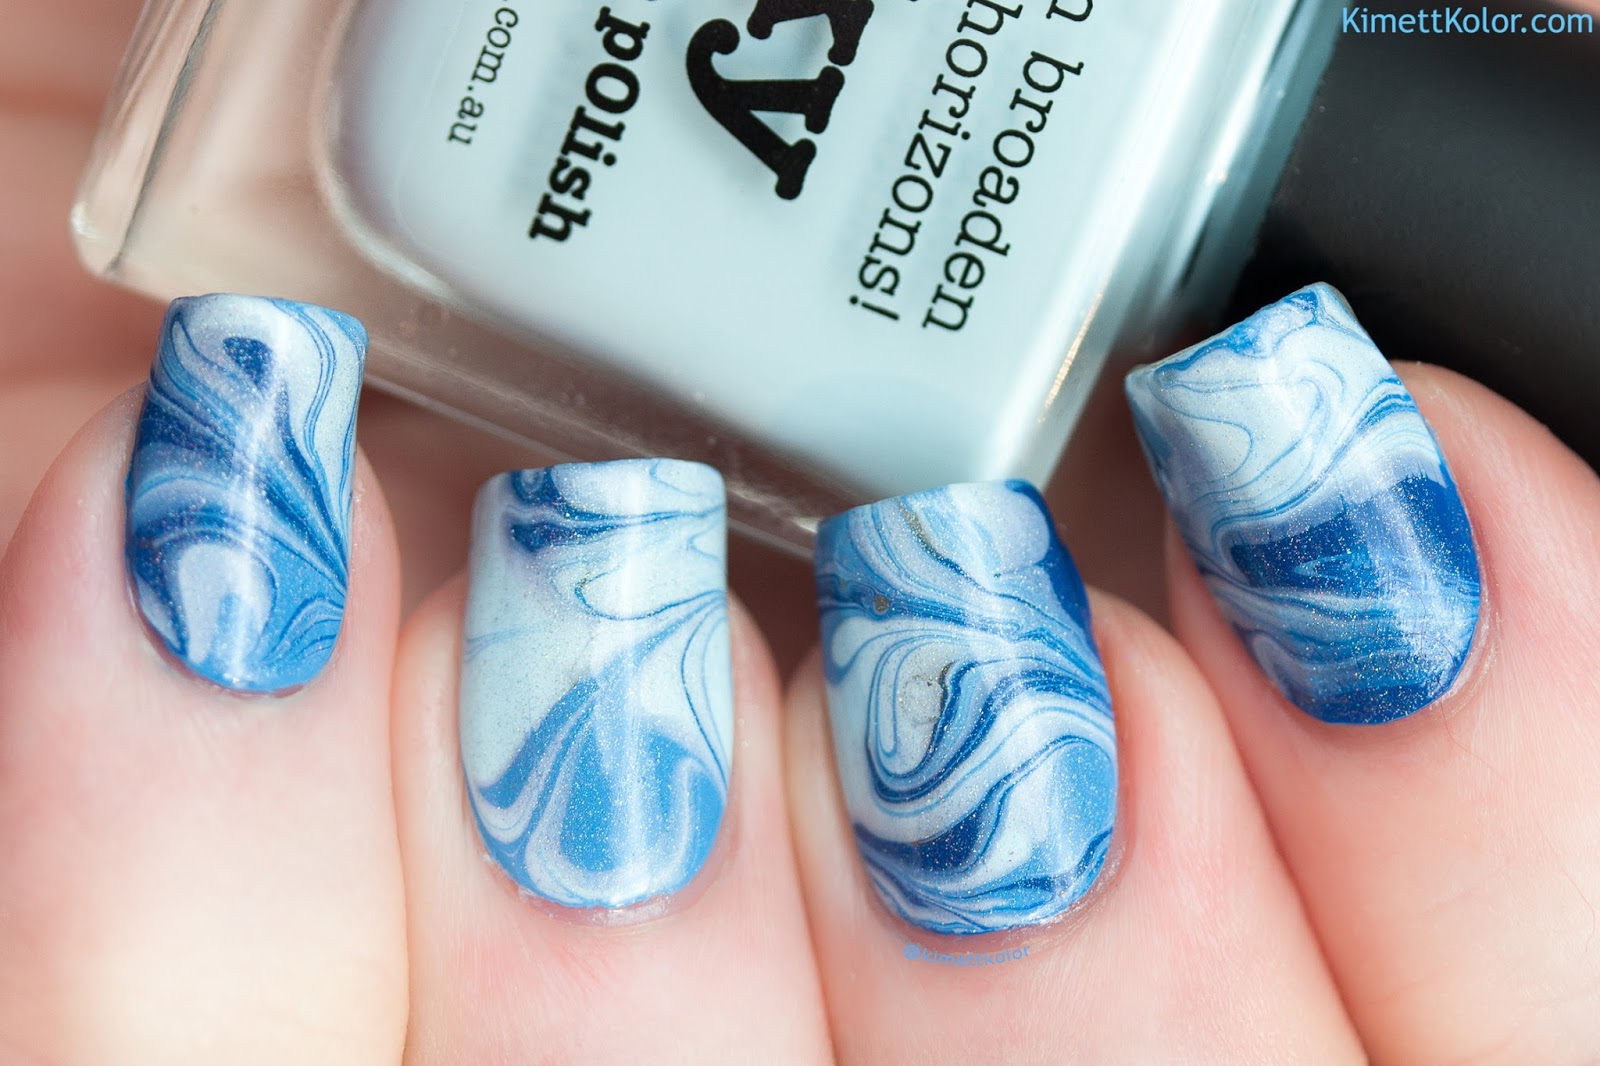 KimettKolor Blue Toned Marble Nail Art